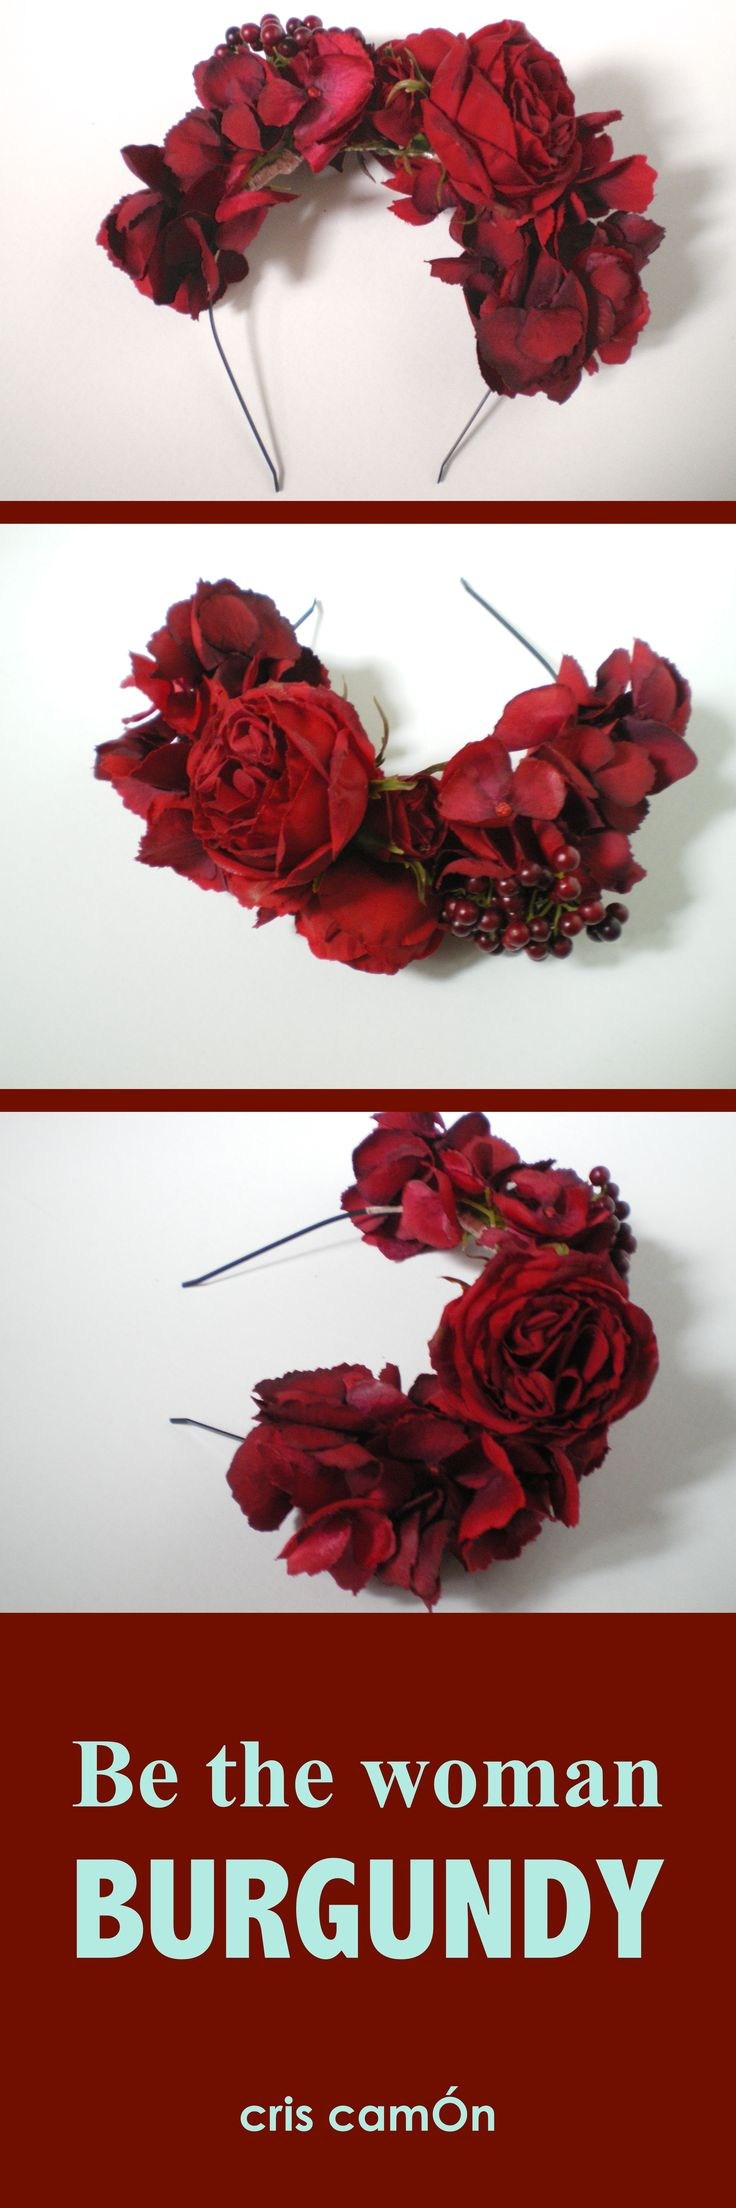 "Diadema de #flores borgoña. ""Be the woman Burgundy"" #Tocados #invitadas"